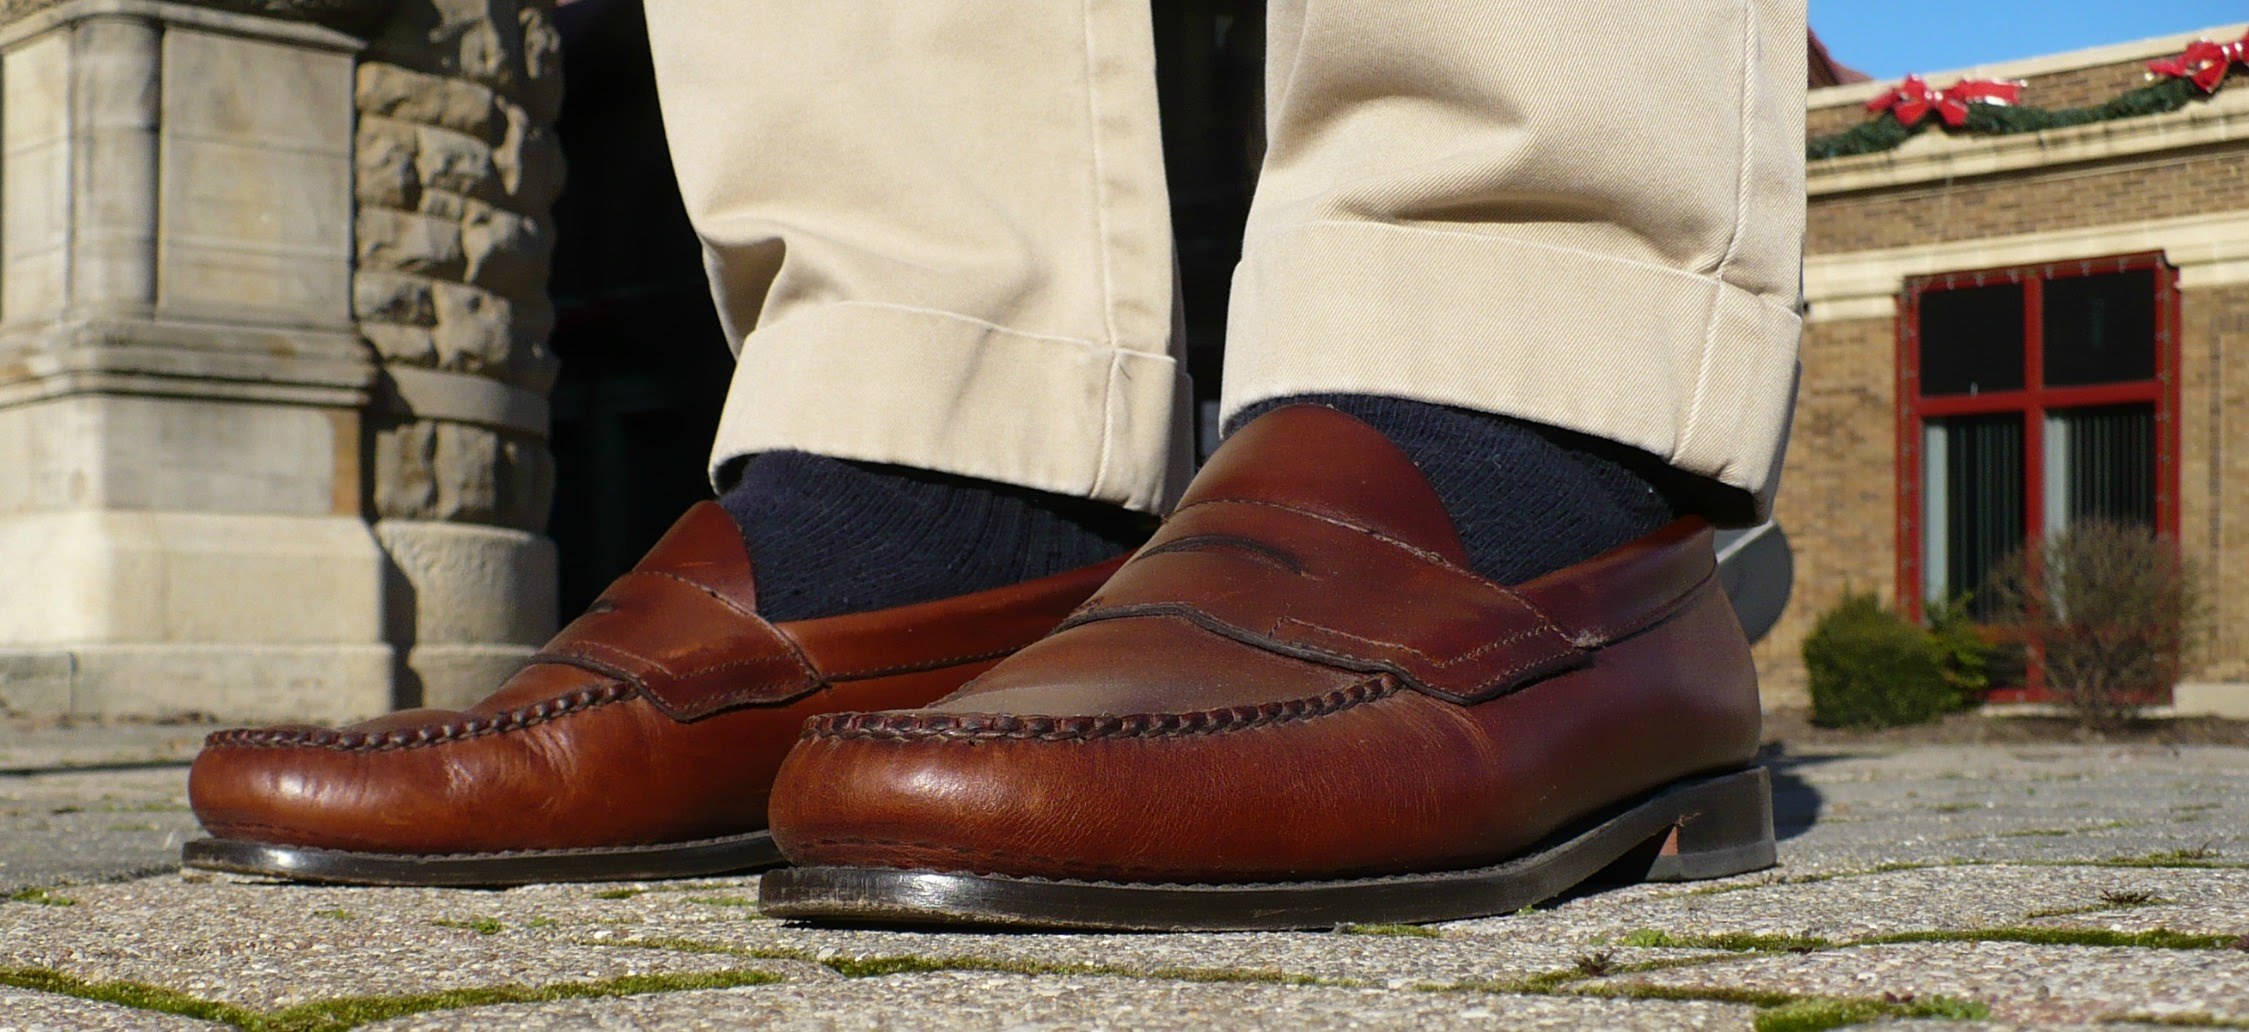 The Penny Loafer and Bass Weejuns